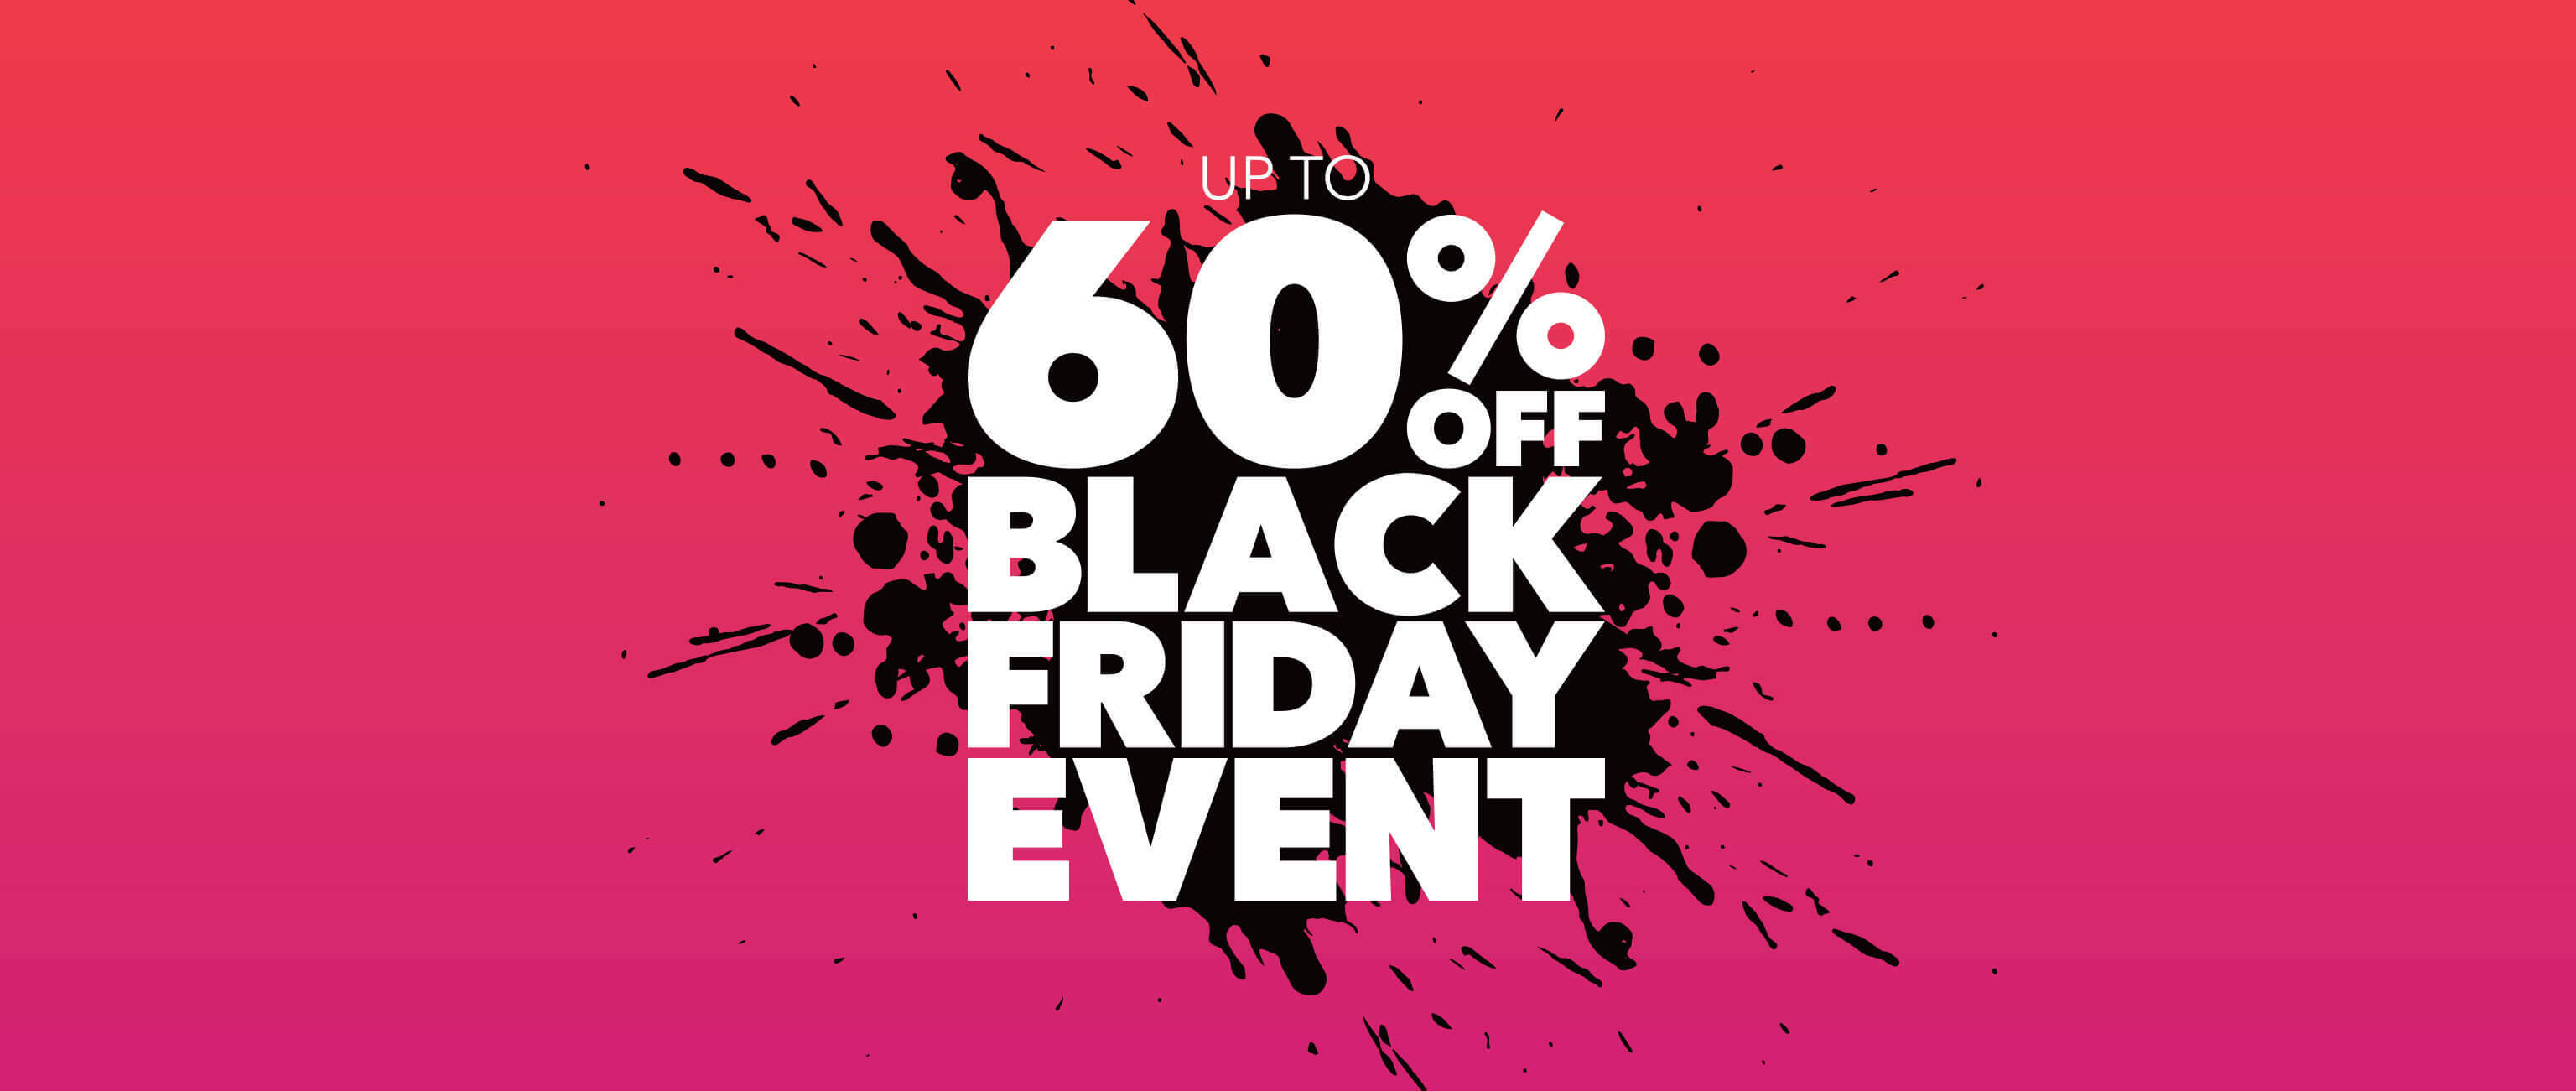 homepage - carousel - 60% off black friday event